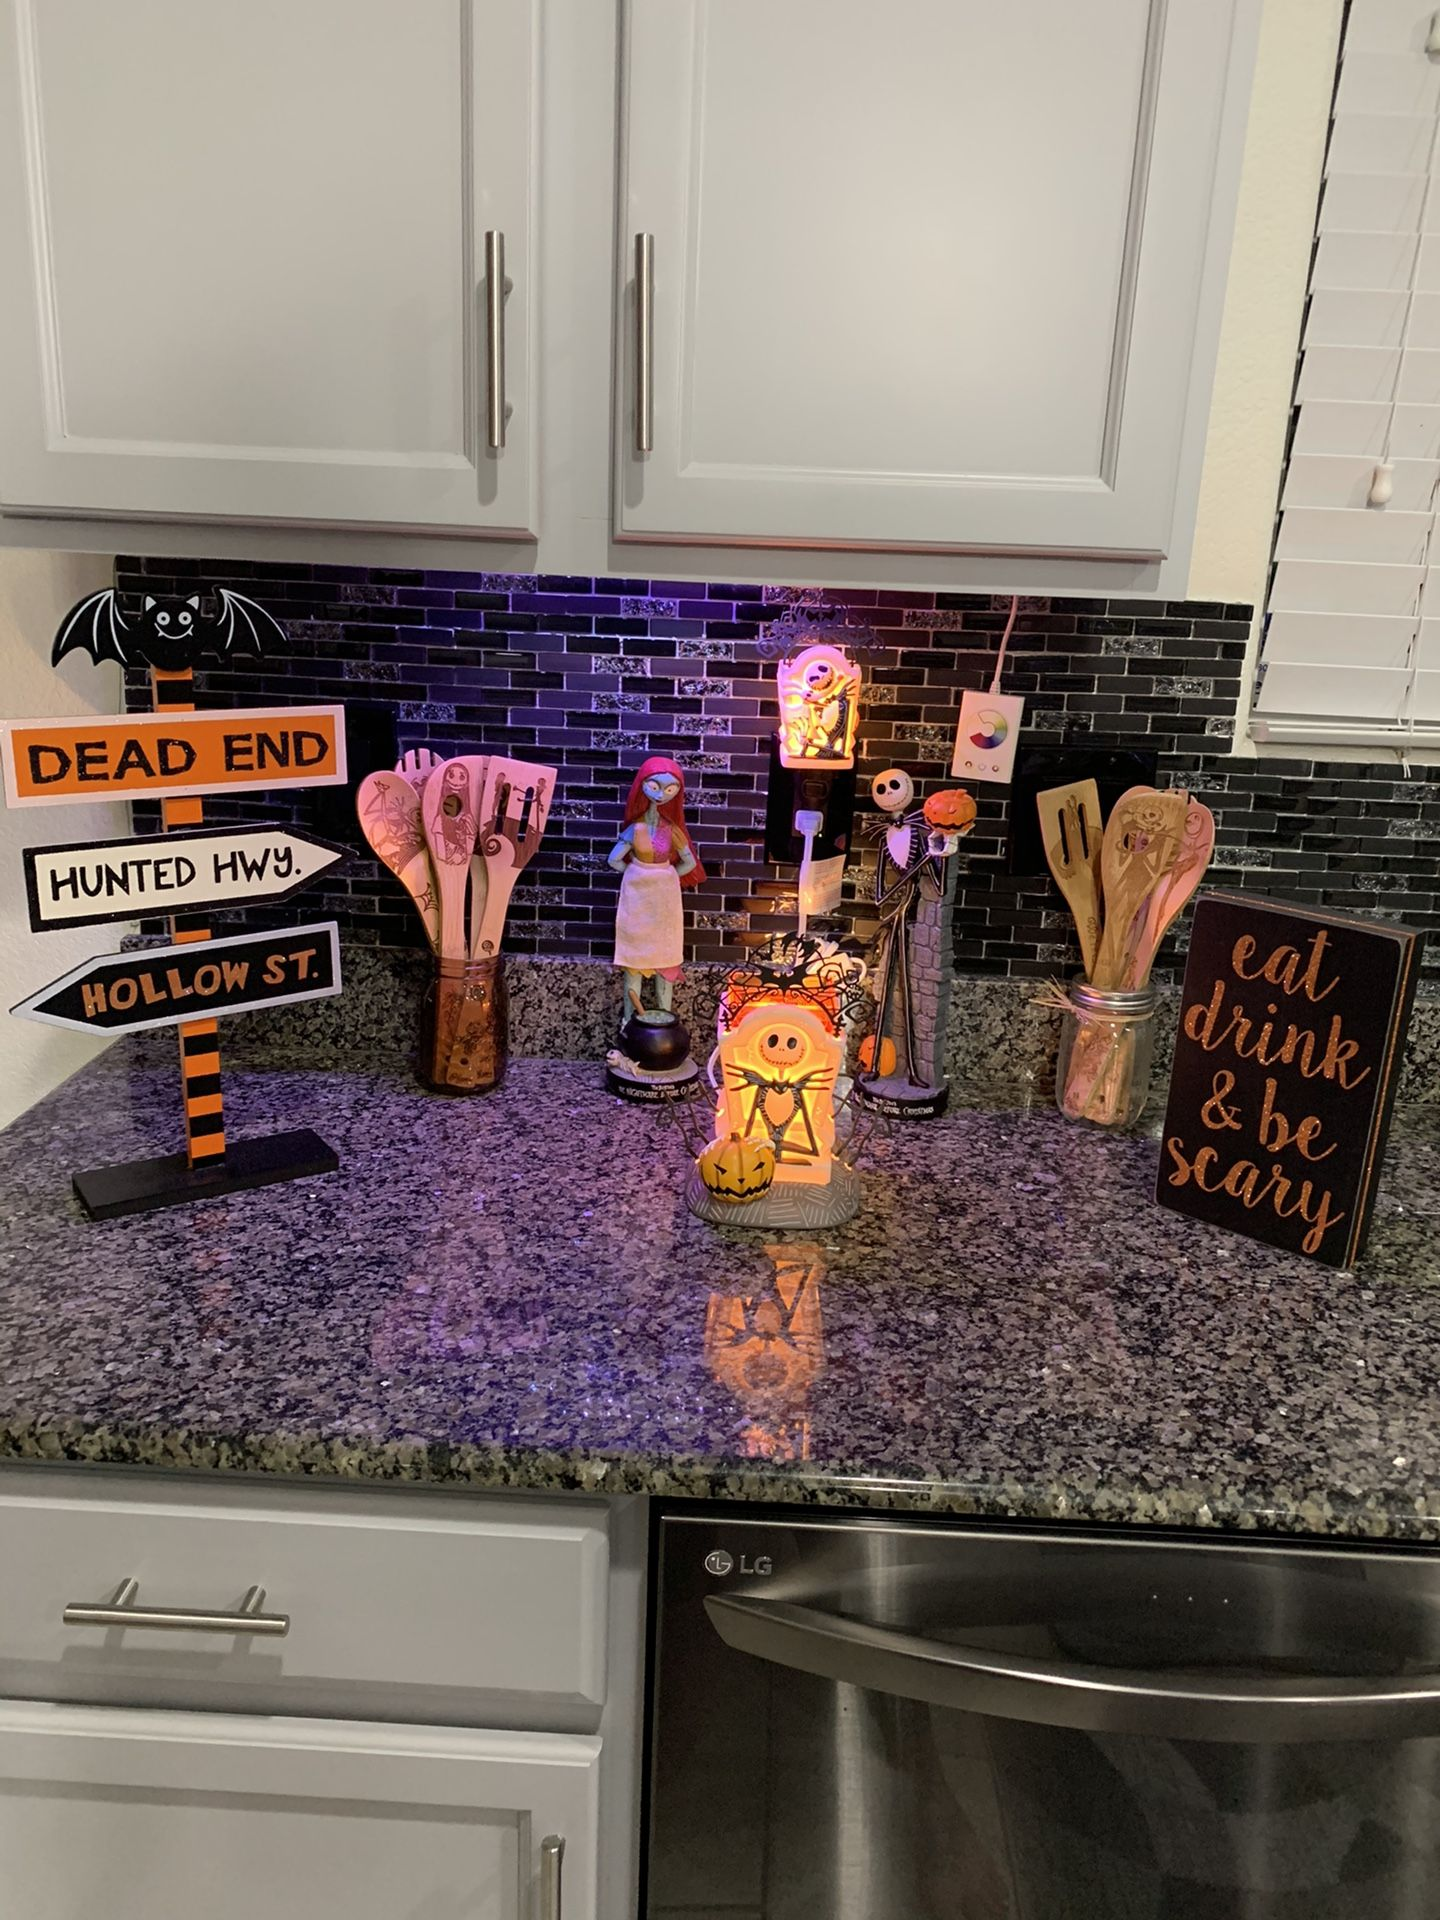 Nightmare before Christmas scentsy warmers